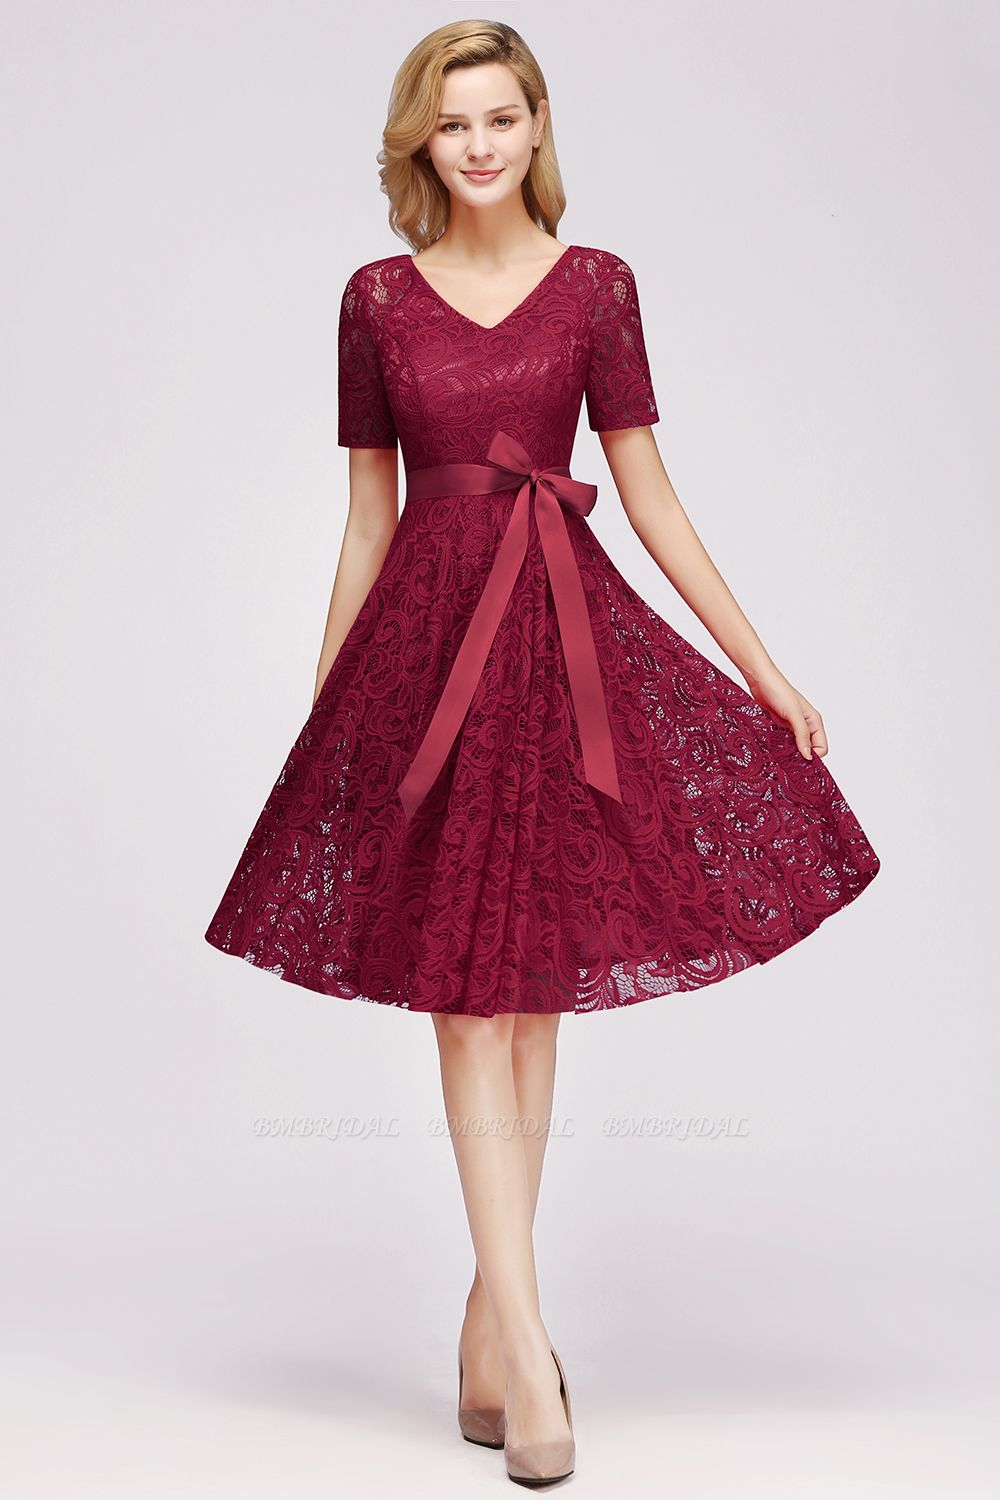 BMbridal Burgundy Lace Short Sleeve Homecoming Dress Mini Party Dress On Sale